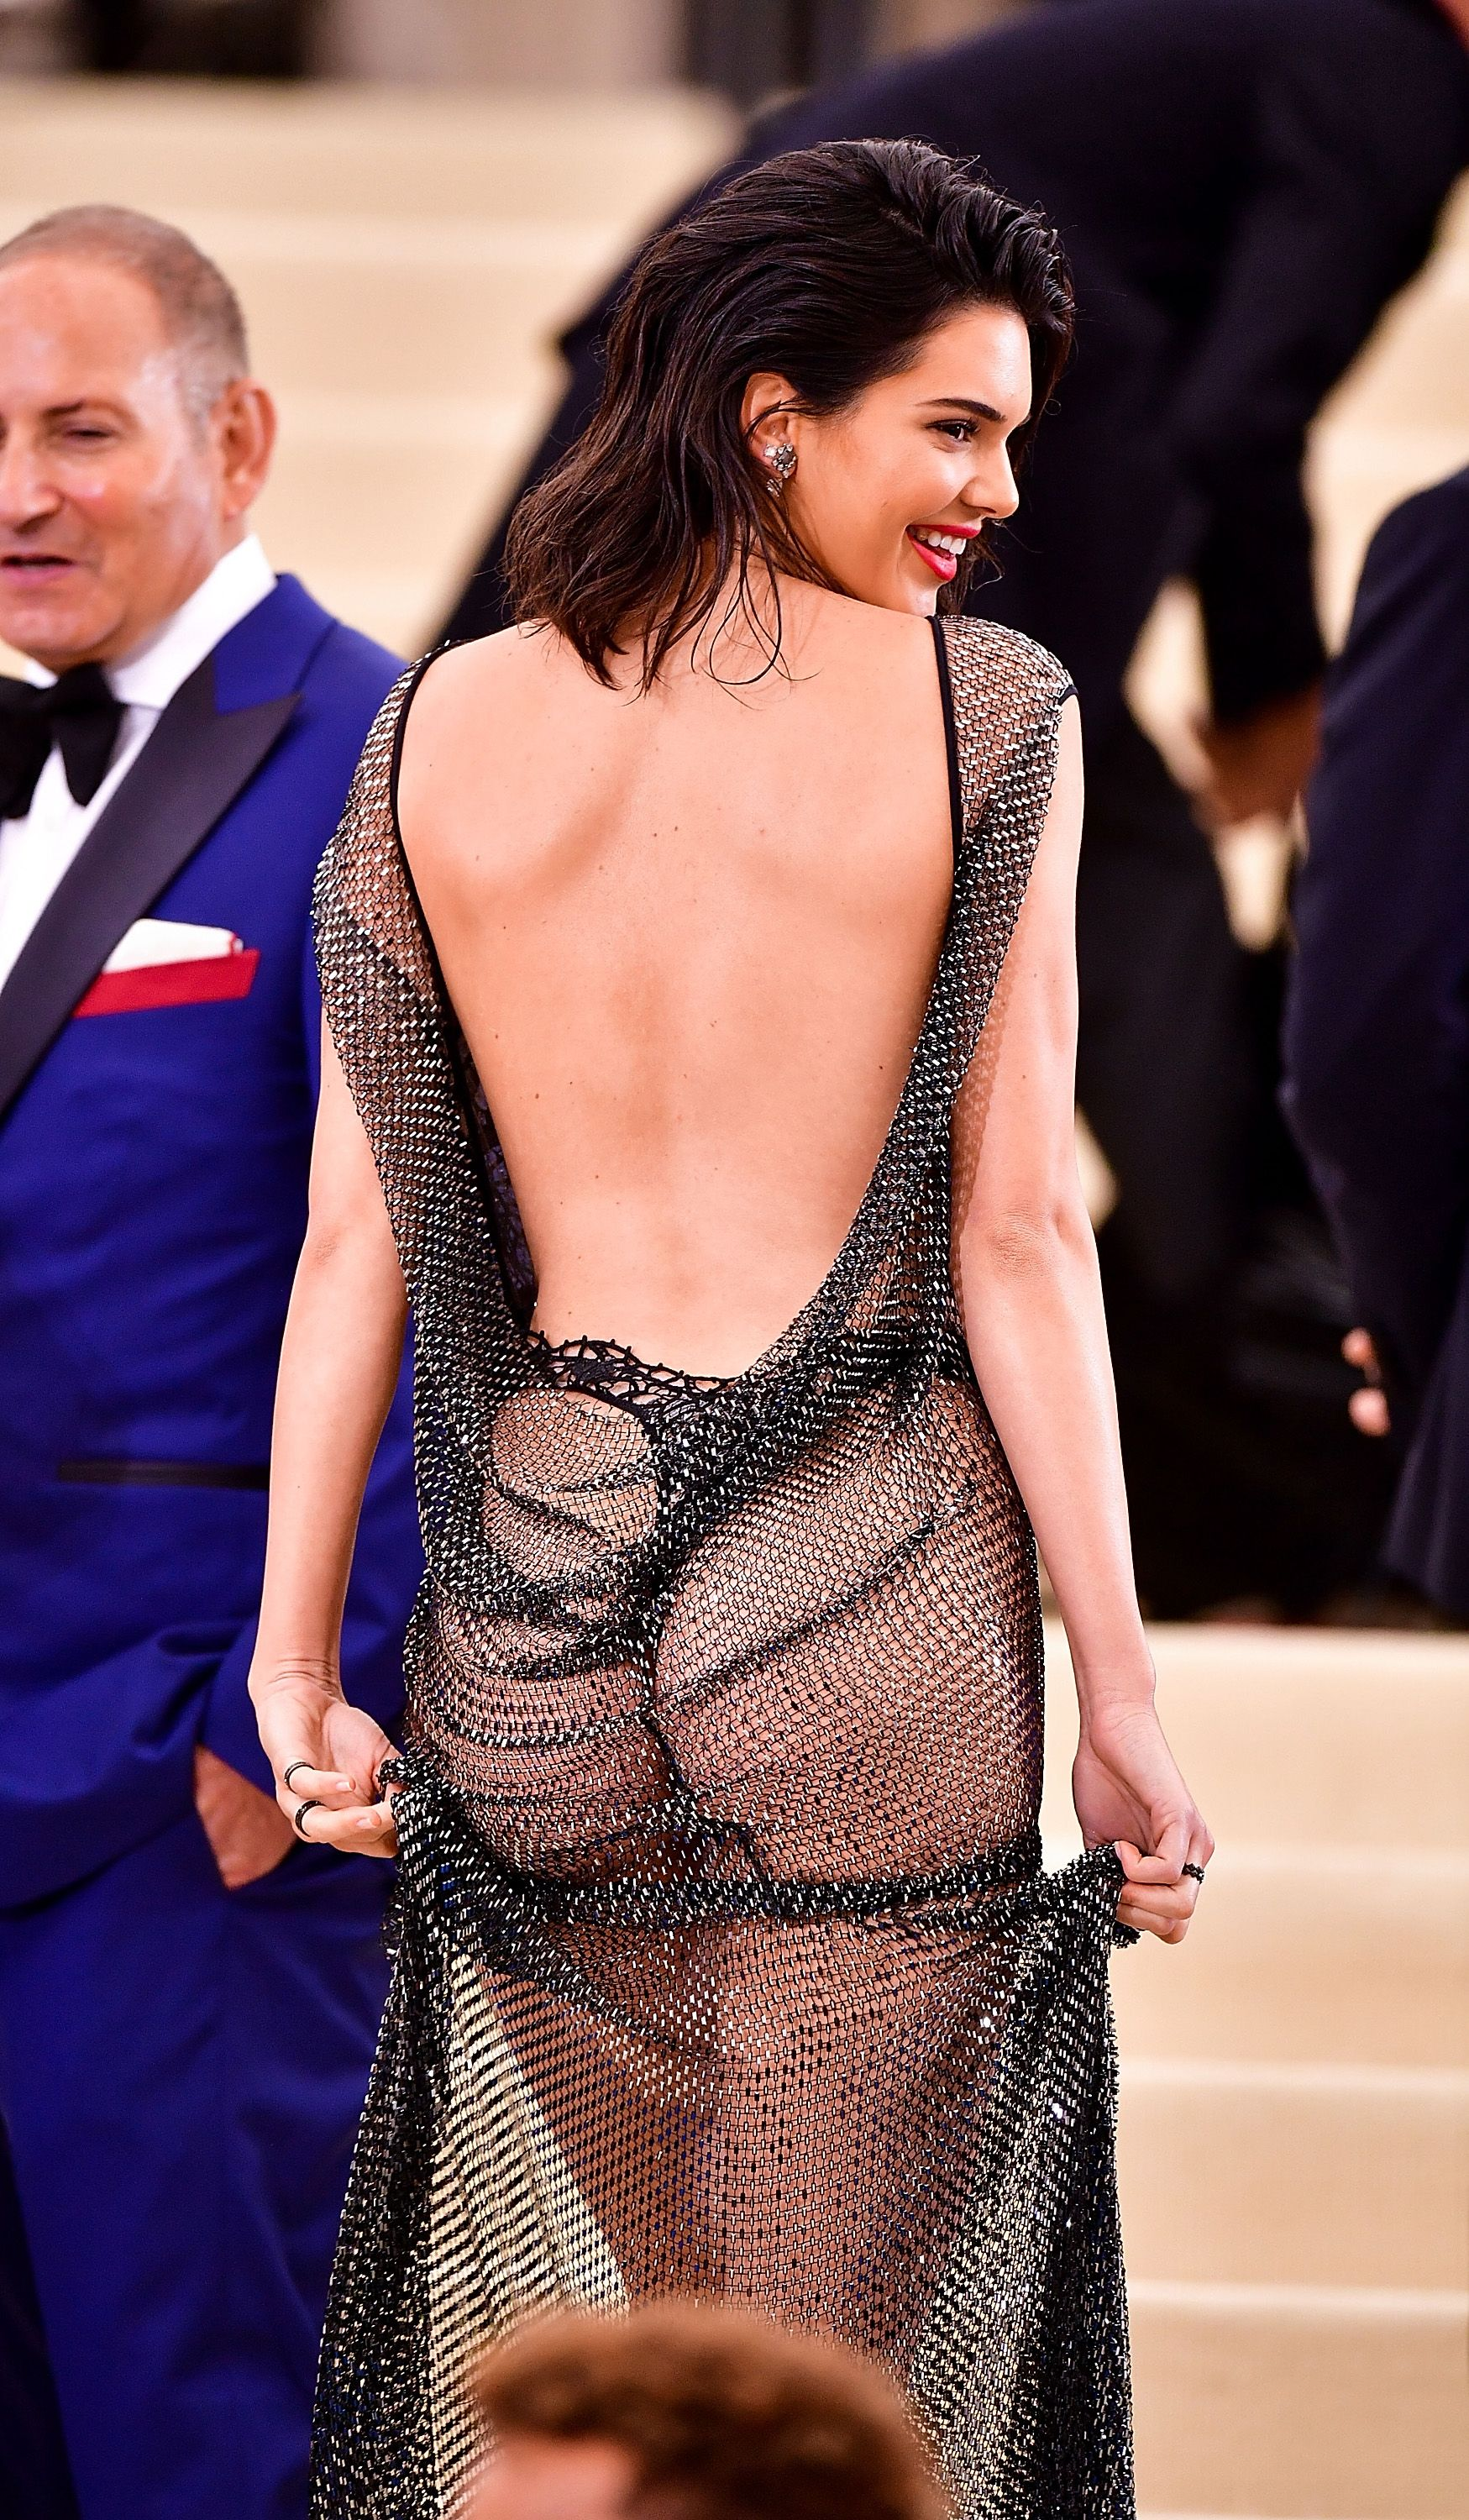 Kendall jenner see through 6 new picture